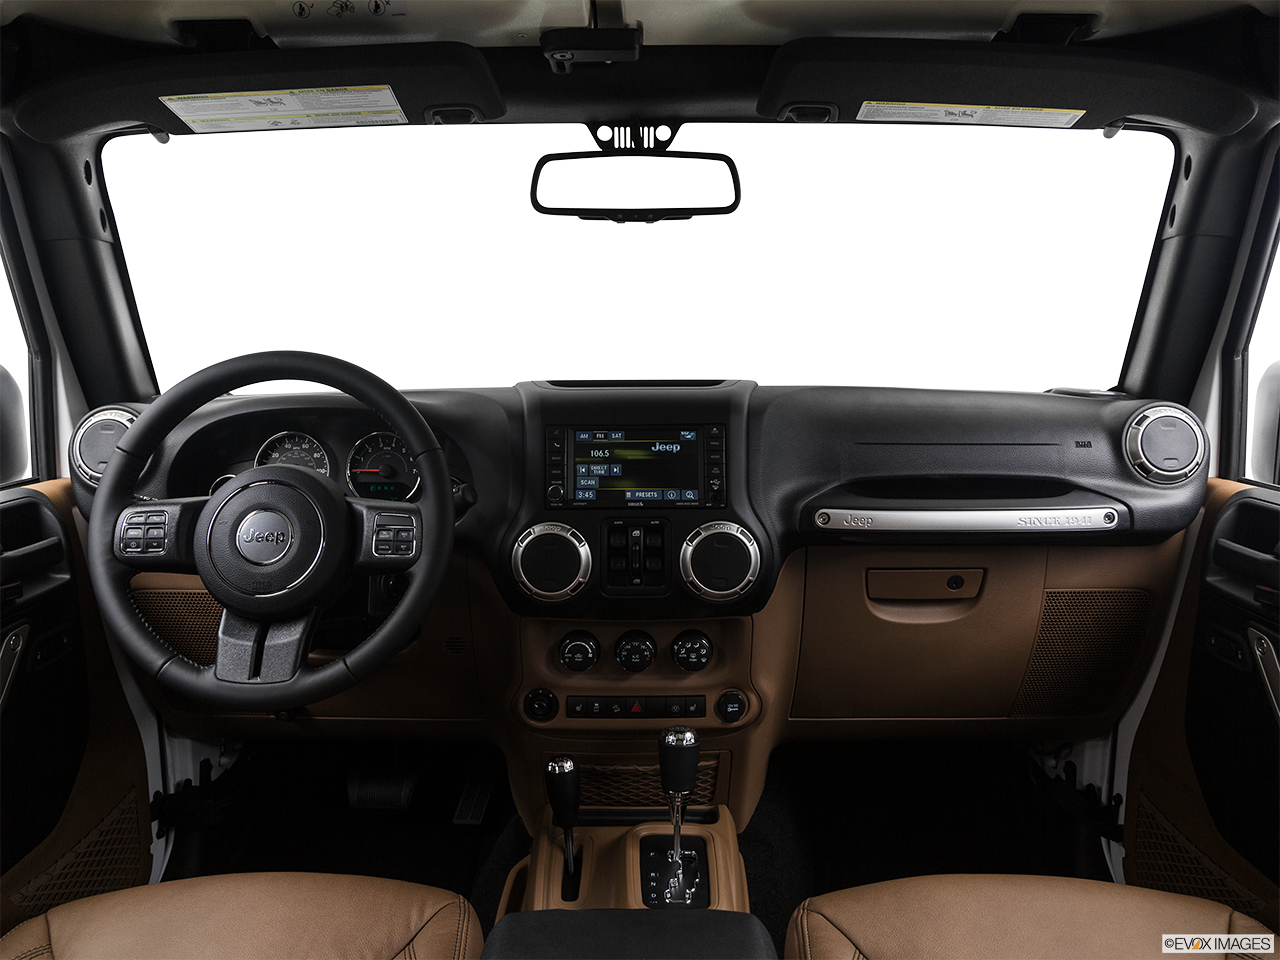 Interior View Of 2017 Jeep Wrangler Unlimited near Atlanta